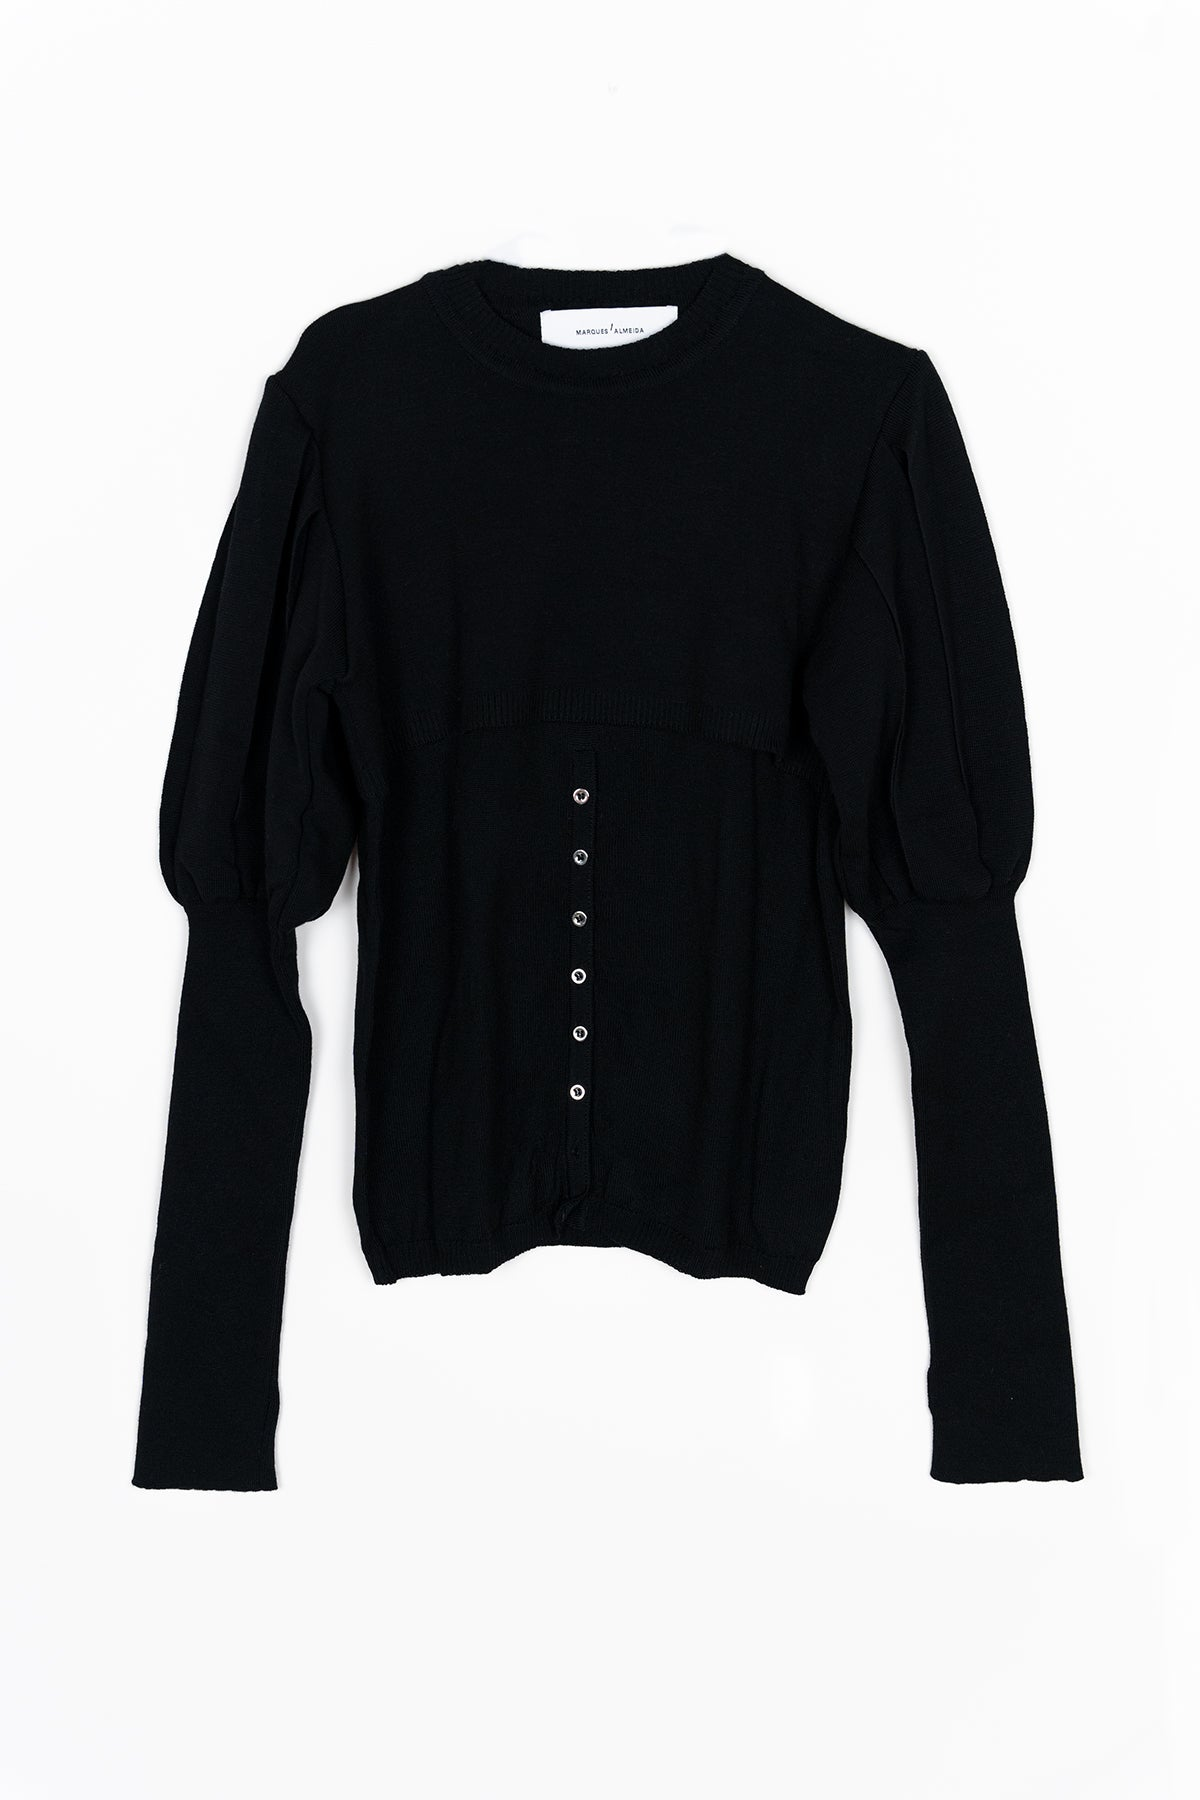 BLACK KNIT TOP W/ PUFF SLEEVES